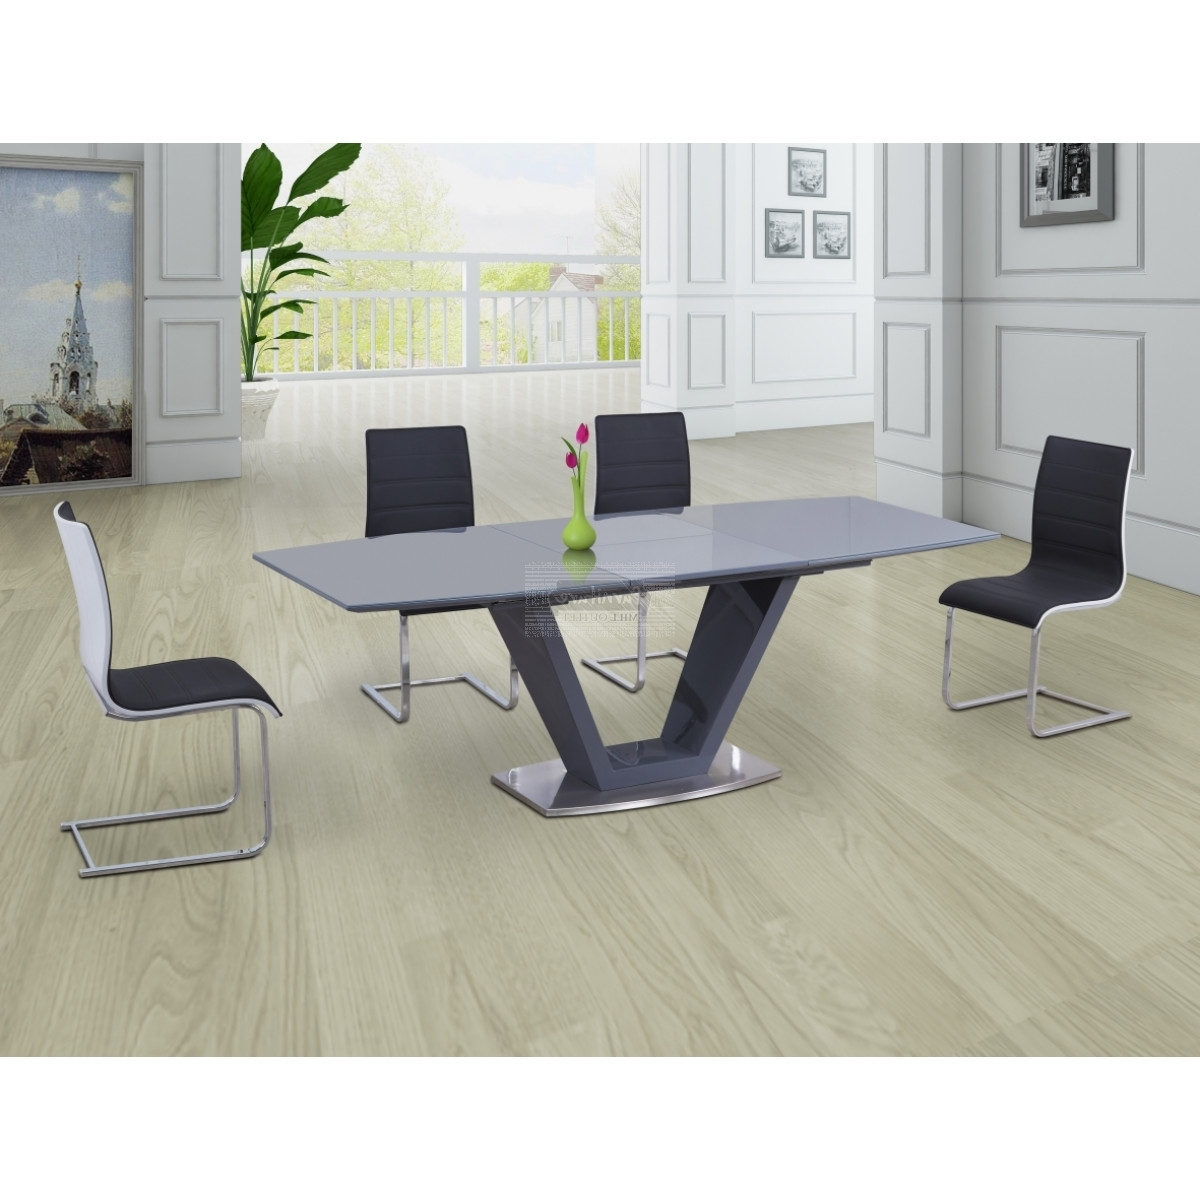 Newest Lorgato Grey High Gloss Extending Dining Table - 160Cm To 220Cm intended for Grey Glass Dining Tables